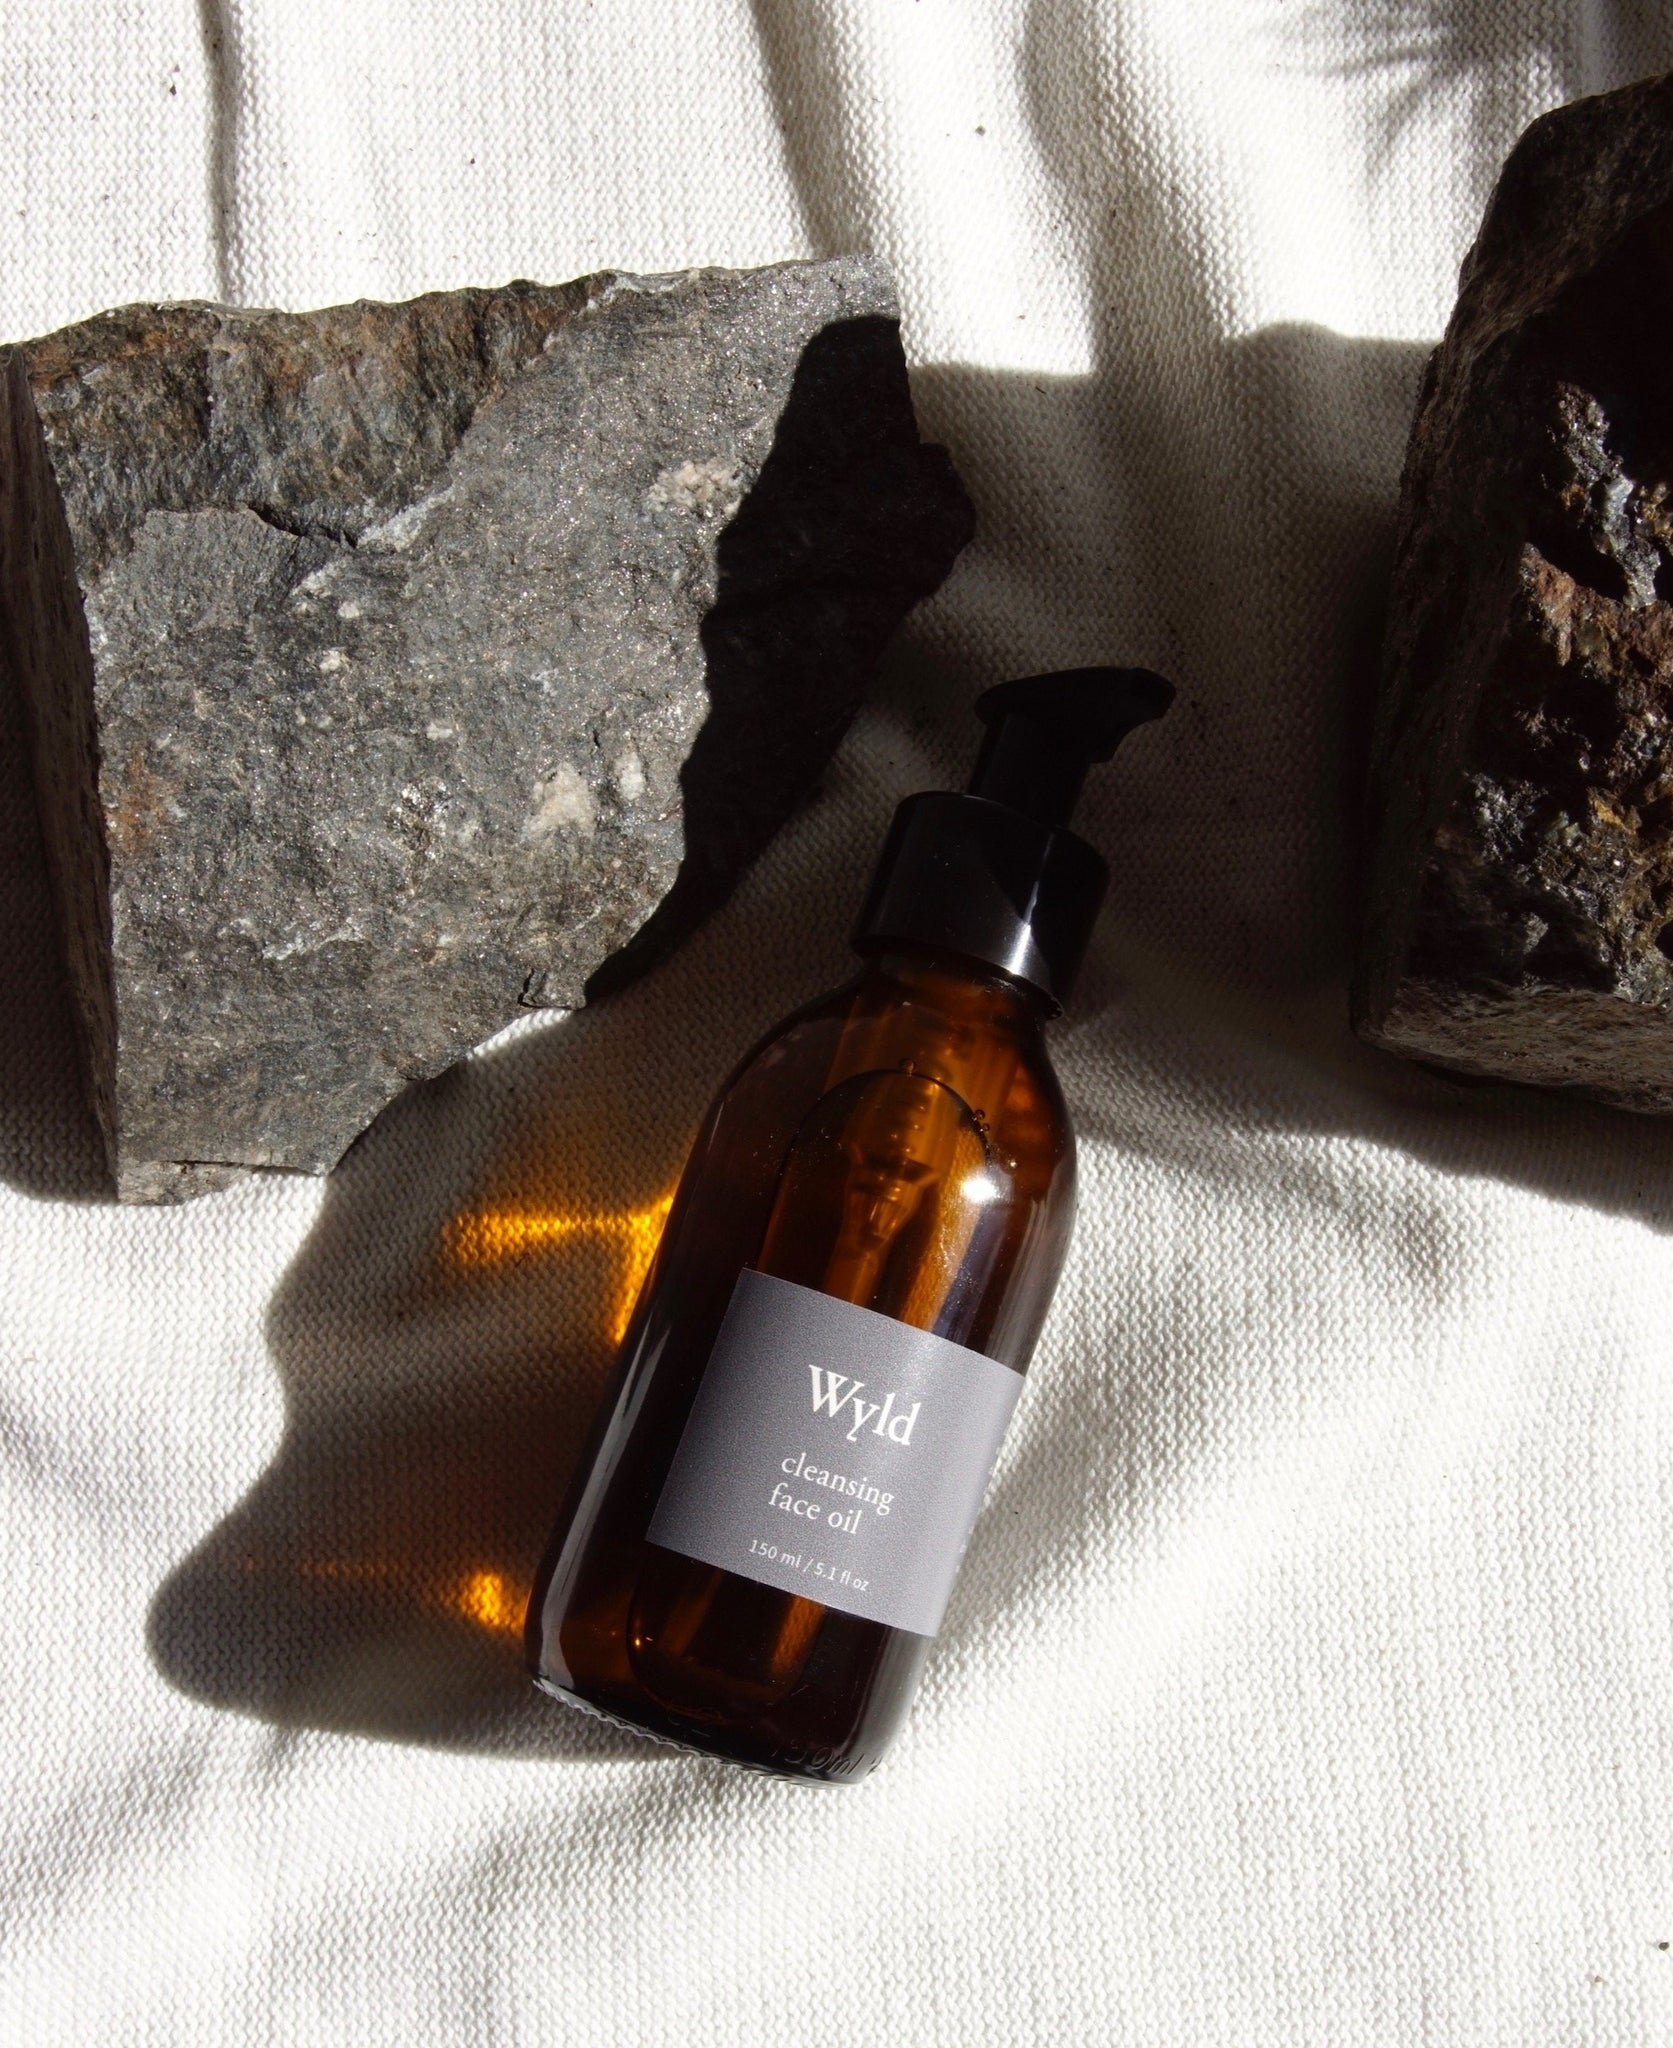 Cleansing Face Oil